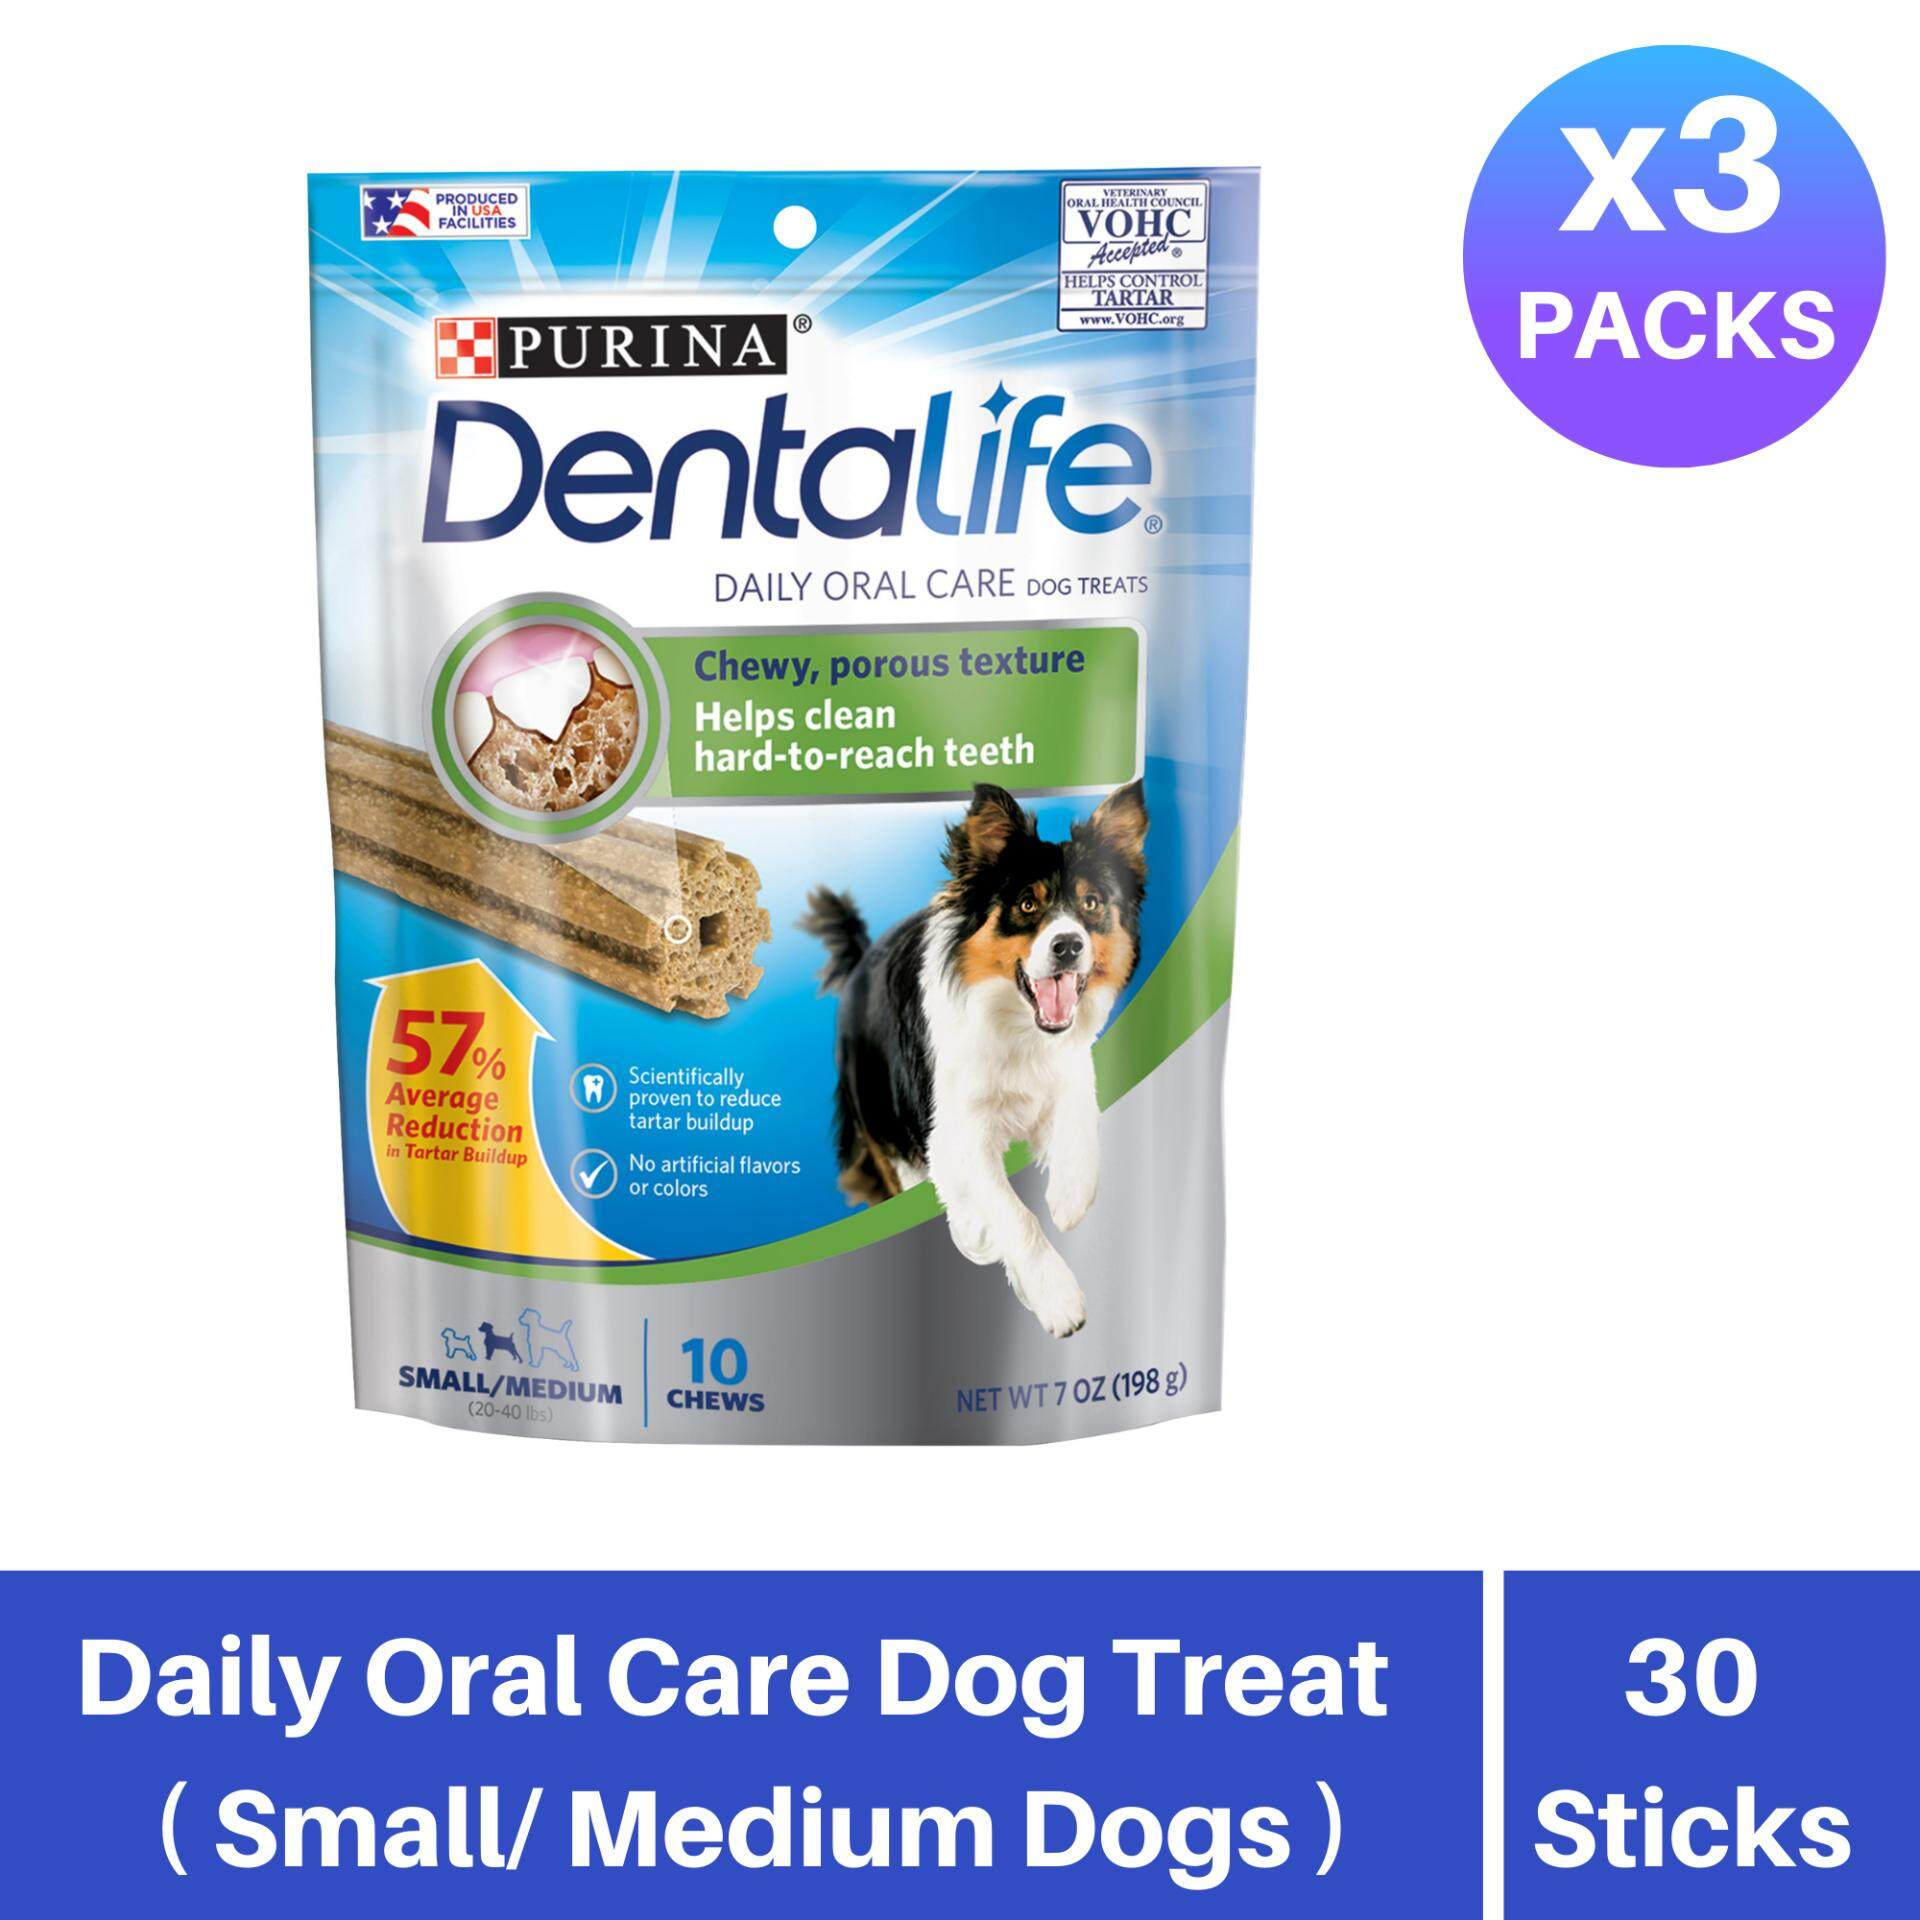 Dentalife Daily Oral Care Dental Chews for Small to Medium Dogs  198g (3 x 10 Chews) - Pet Food/ Dry Food/ Dog Food/ Makanan Anjing